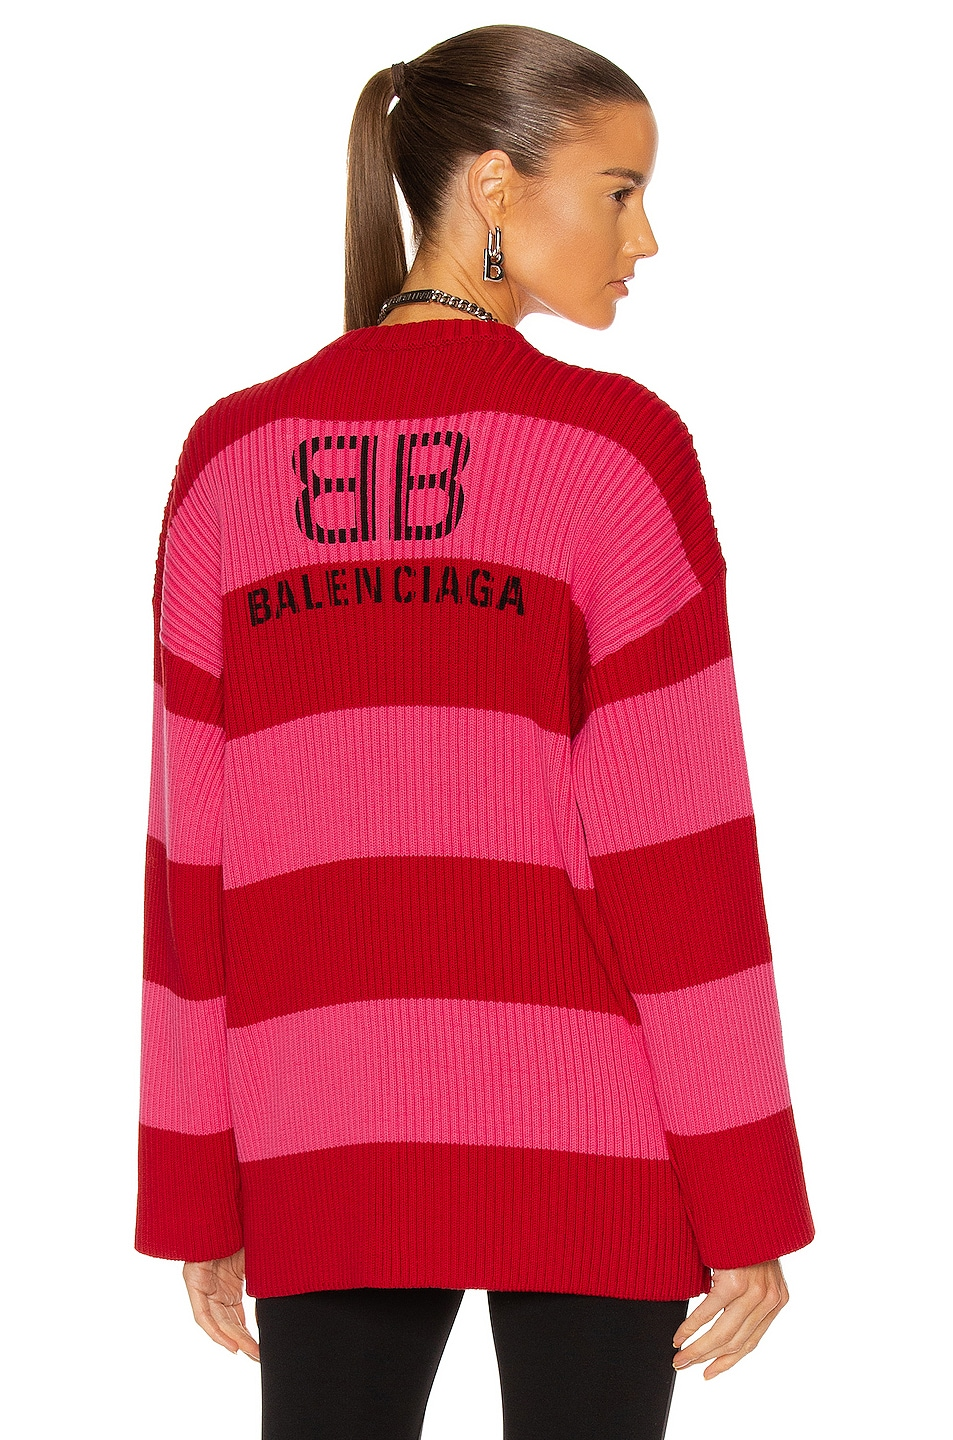 Image 1 of Balenciaga Long Sleeve Crew Neck Sweater in Red & Pink